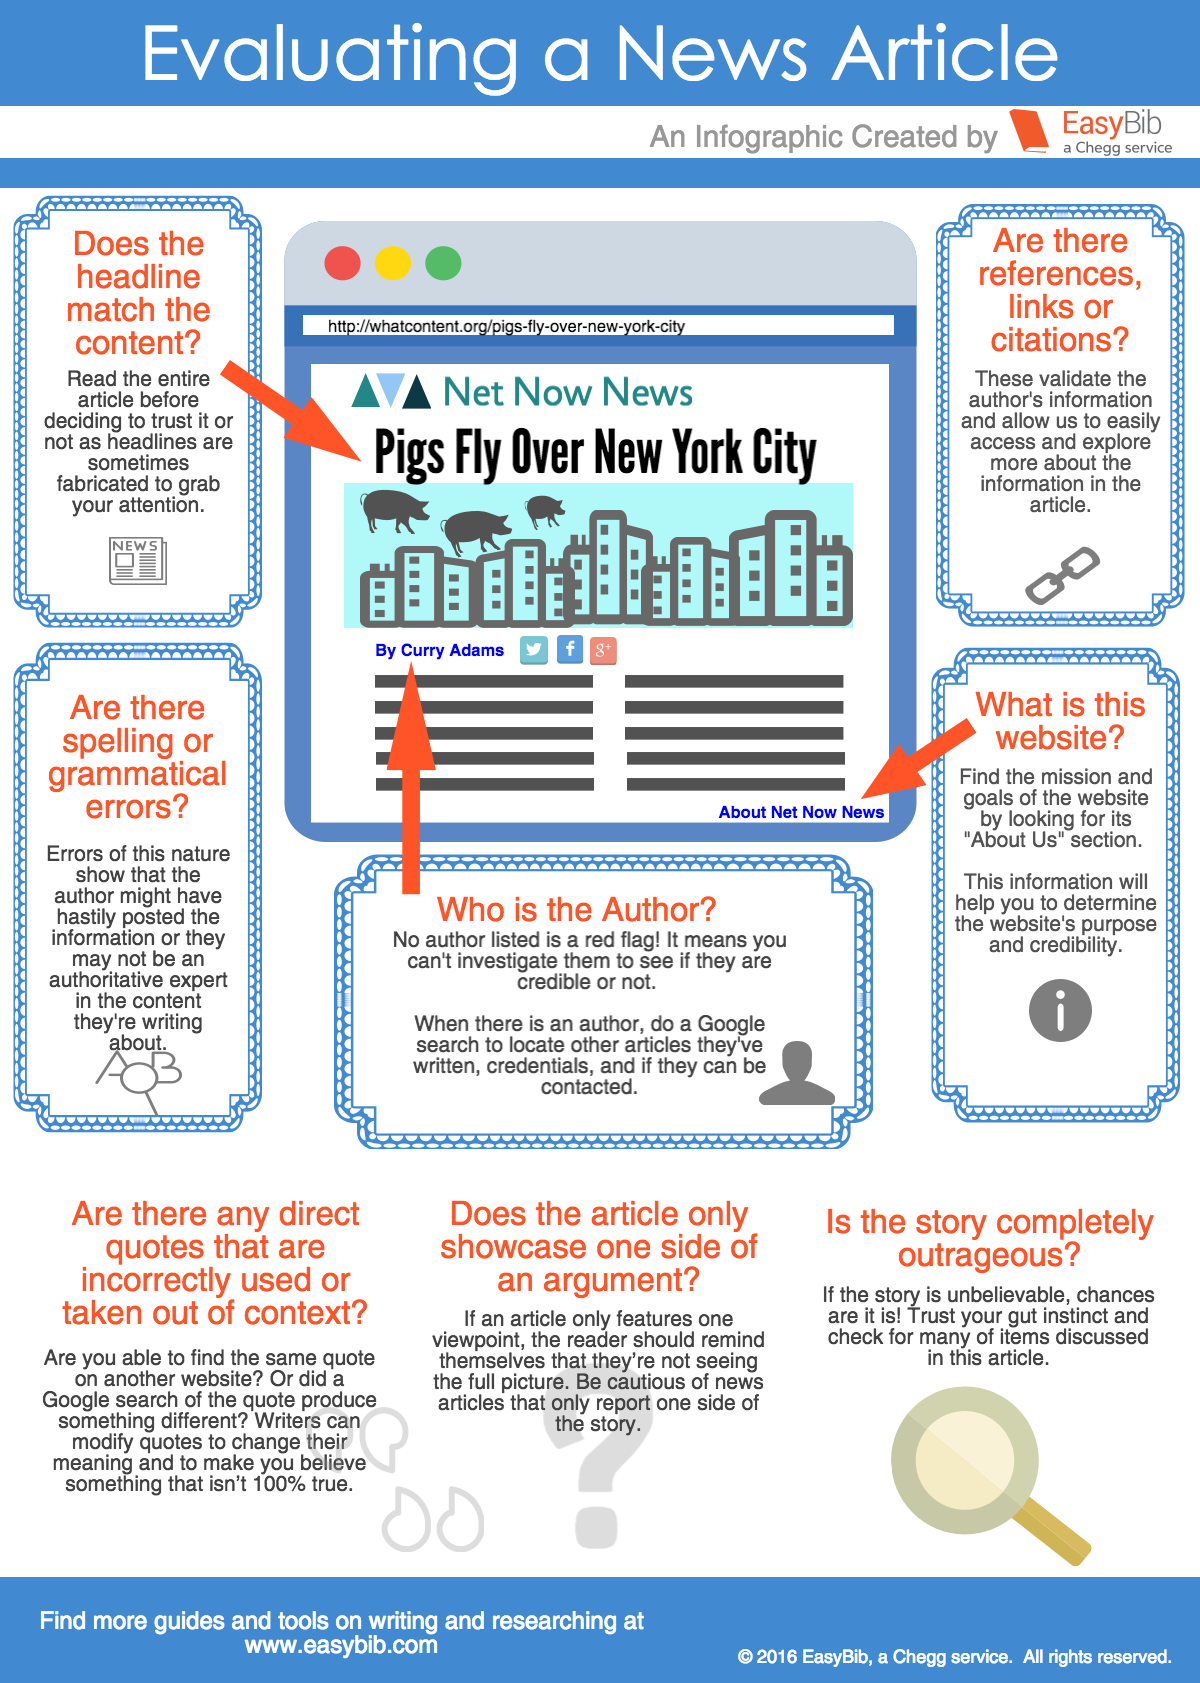 EasyBib: Evaluating a News Article infographic